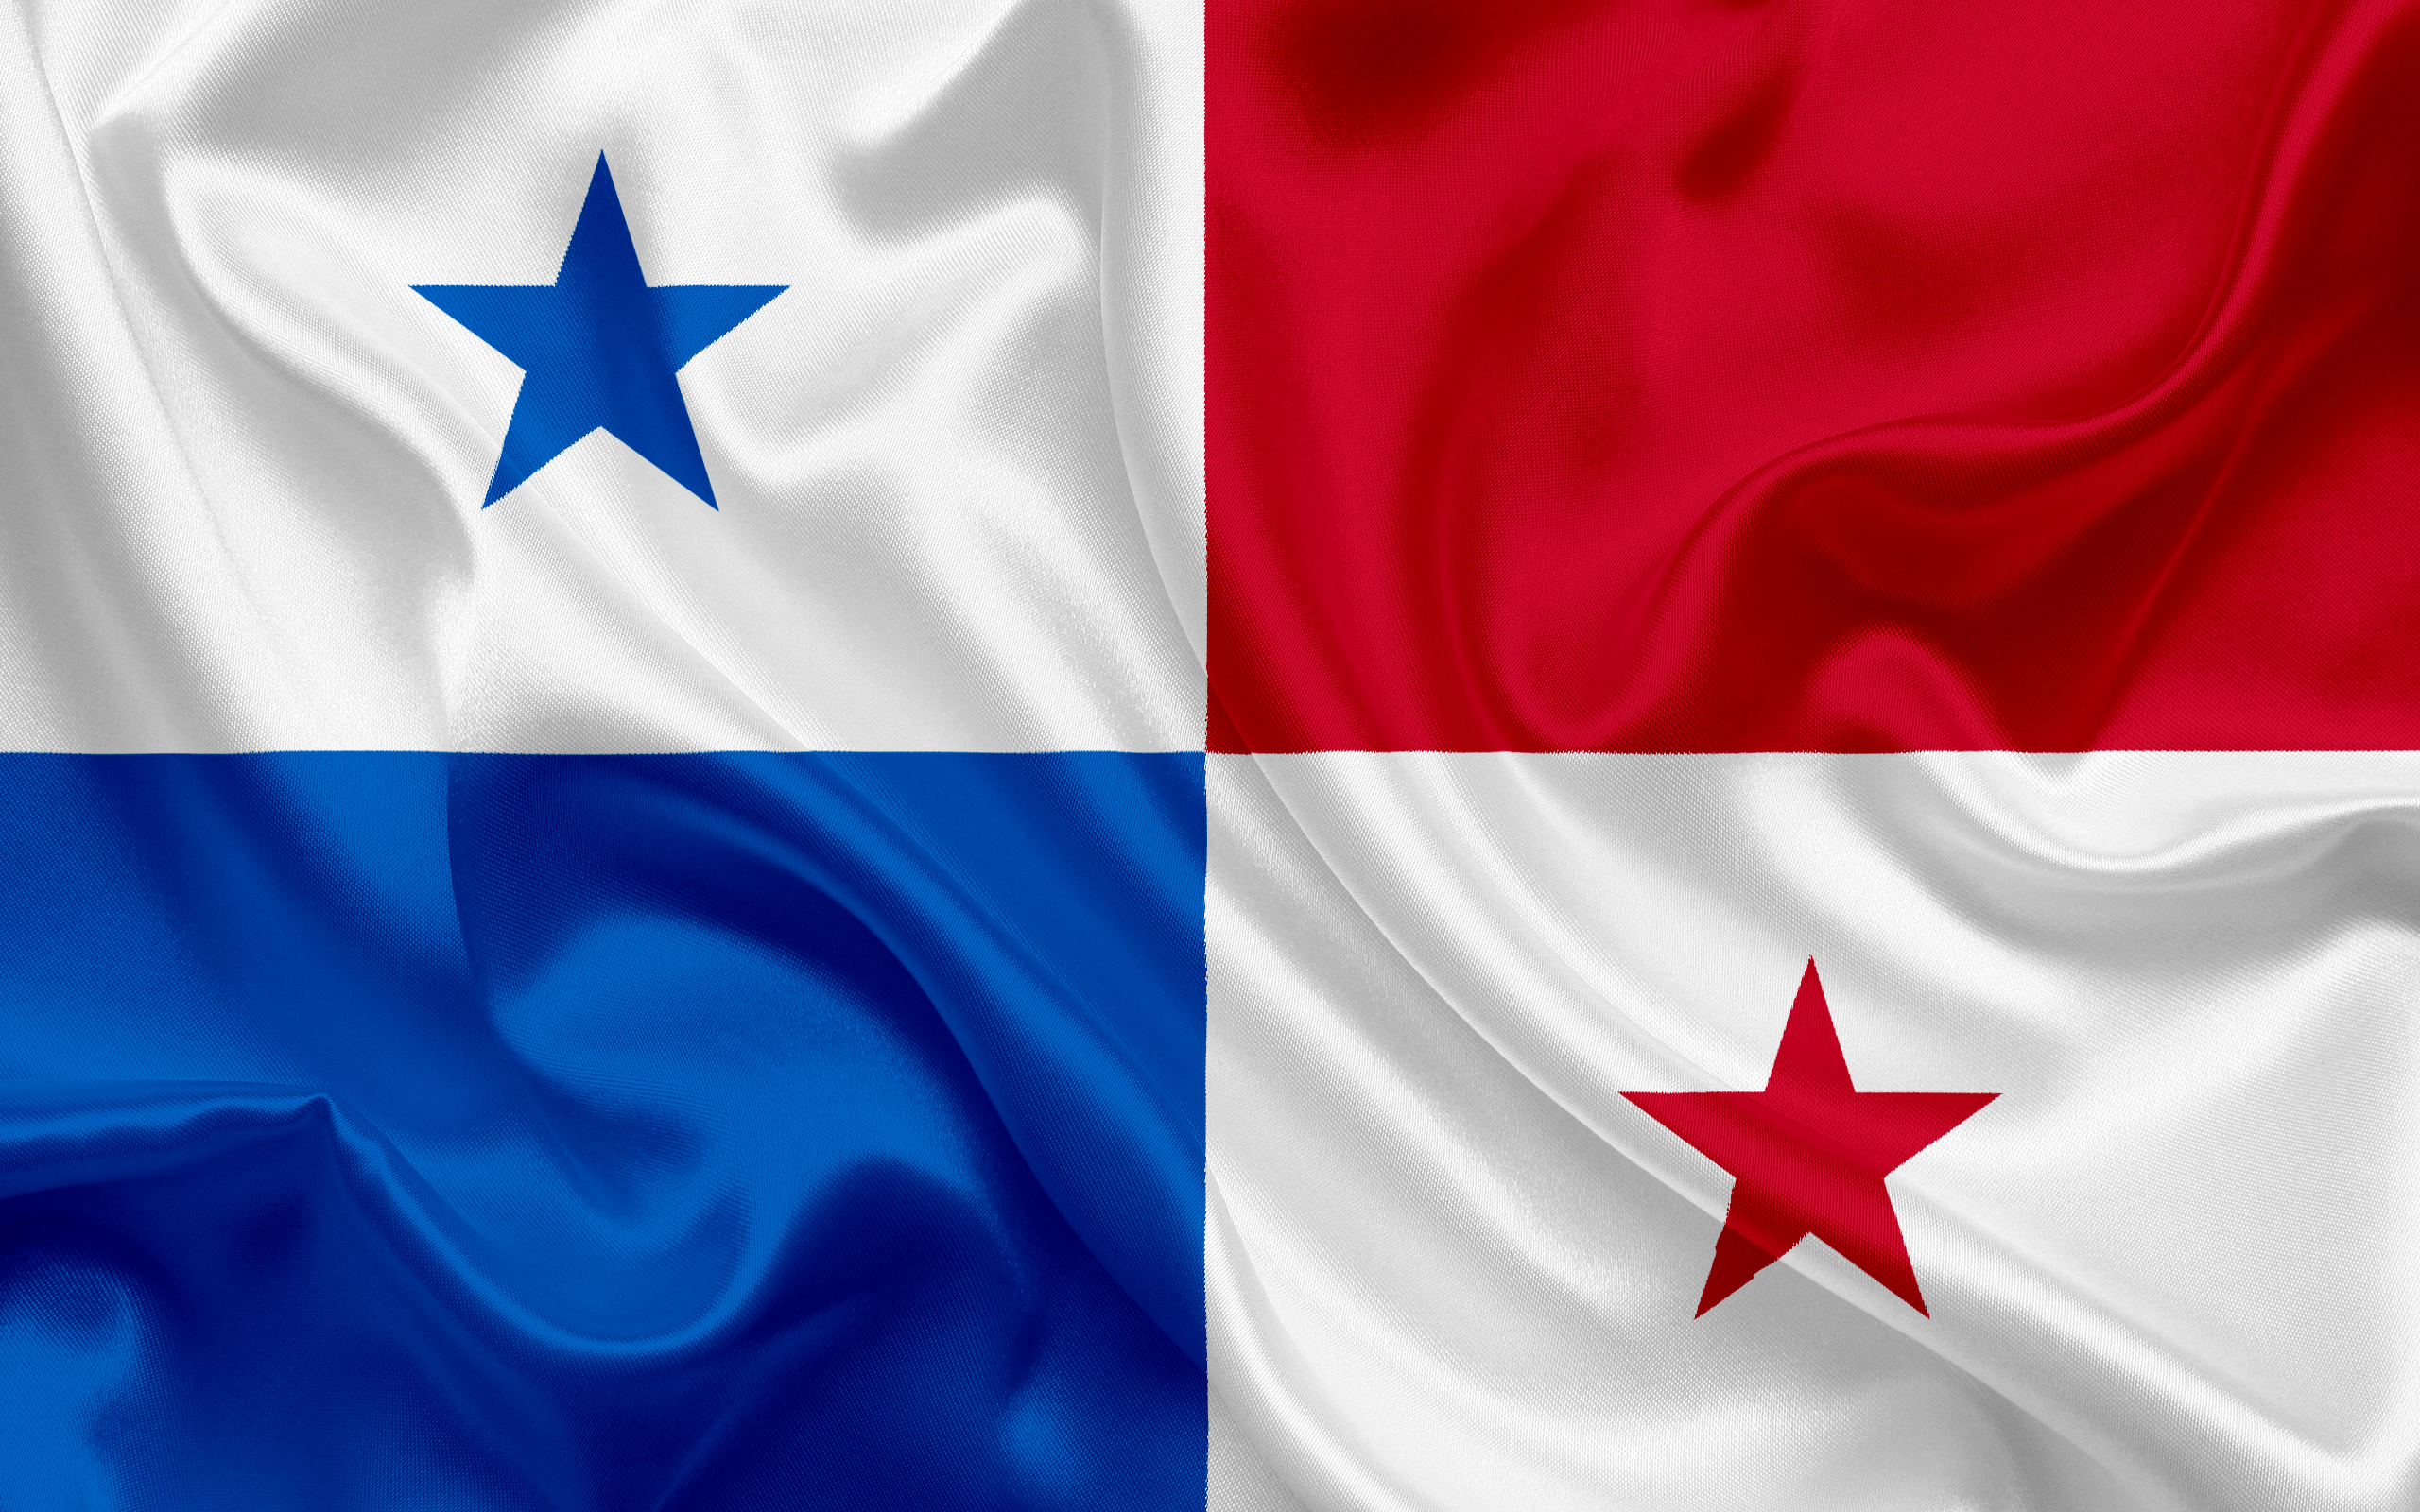 Download wallpapers Panama flag Panama silk flag national 2560x1600